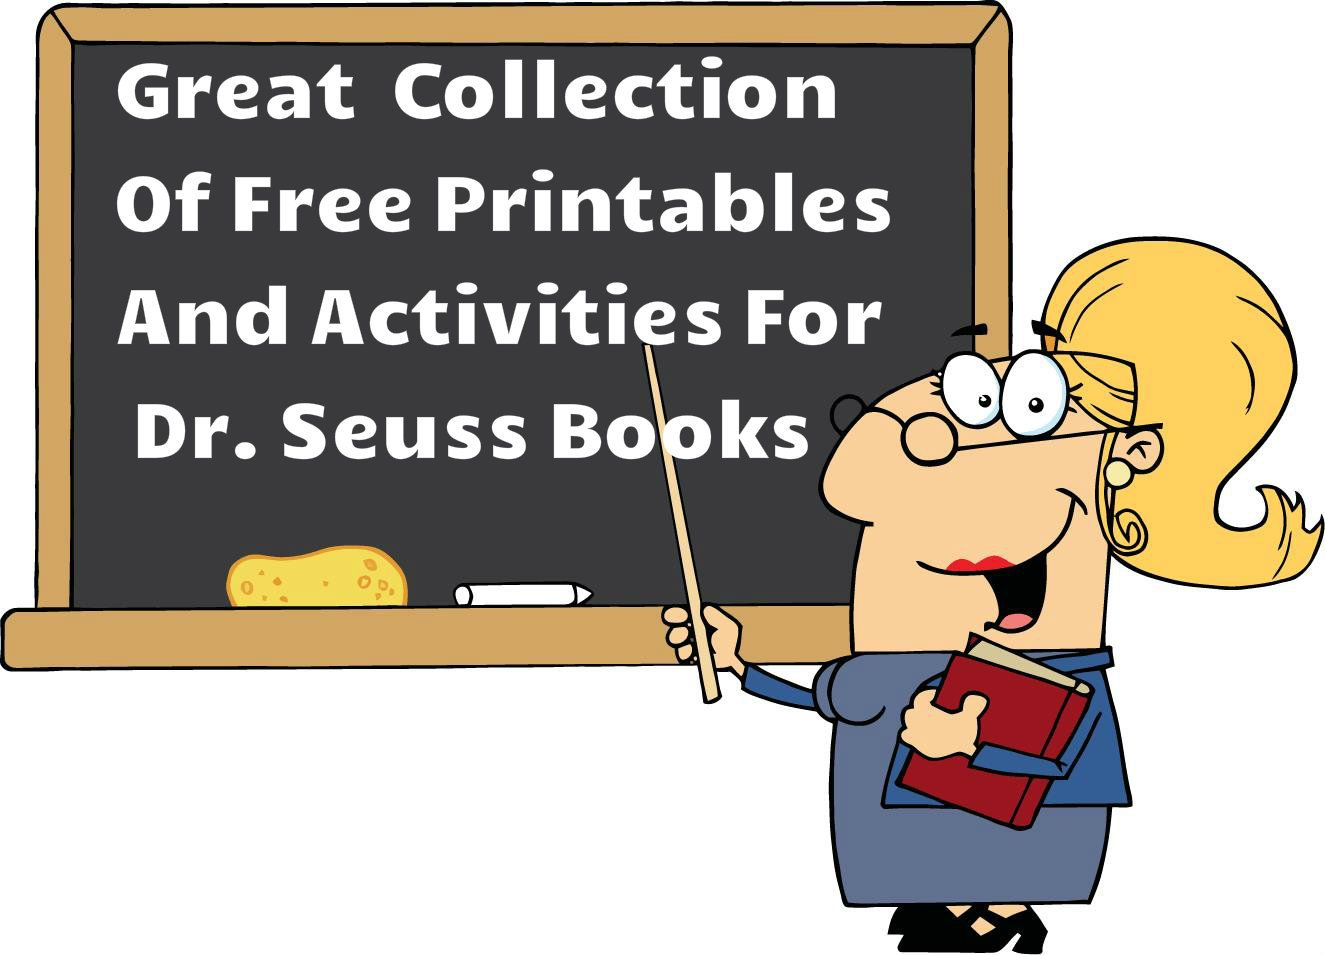 Great Collection Of Free Printables And Activities For Dr